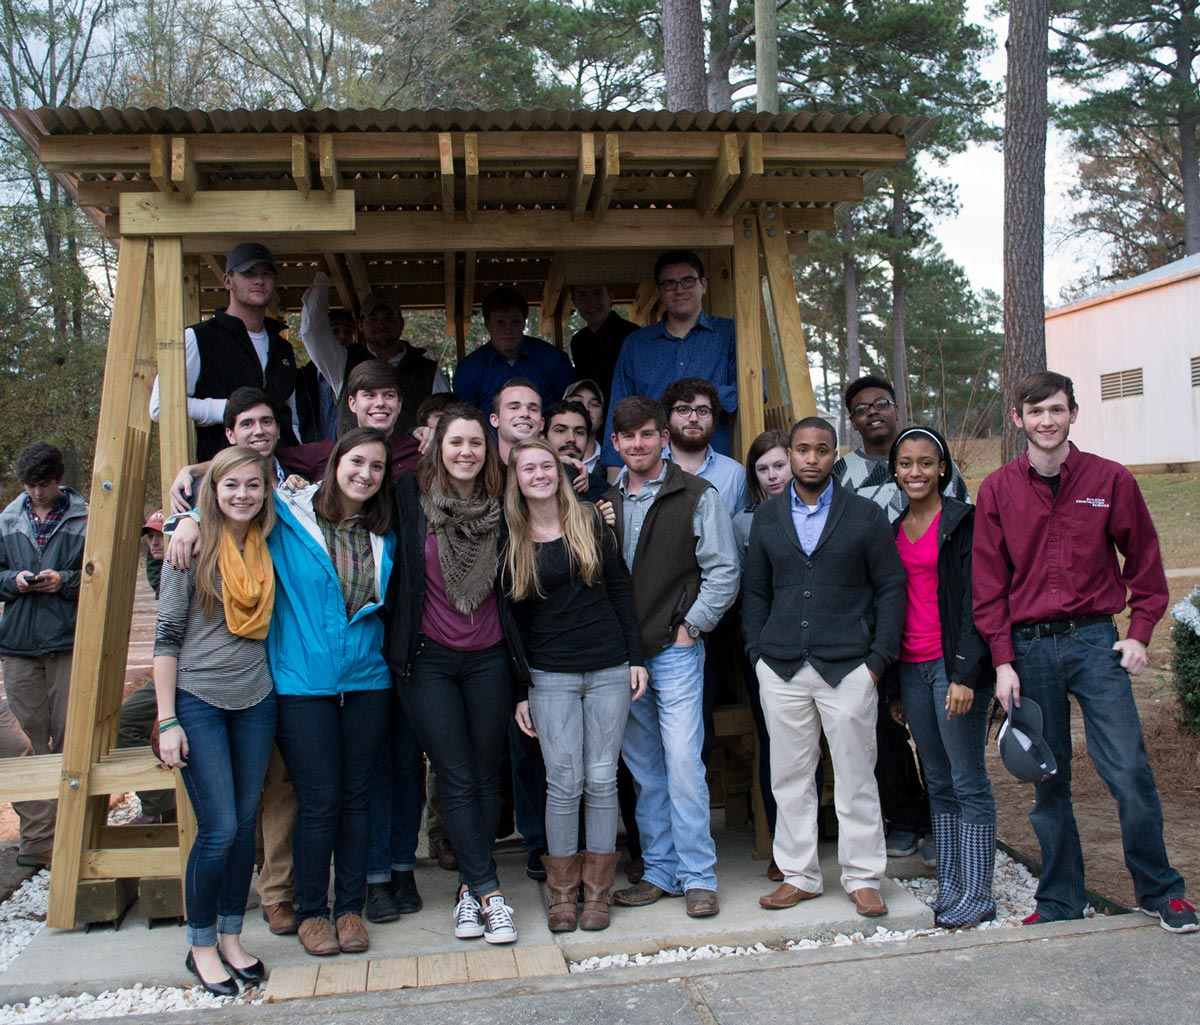 Group shot of students in front of completed structure.